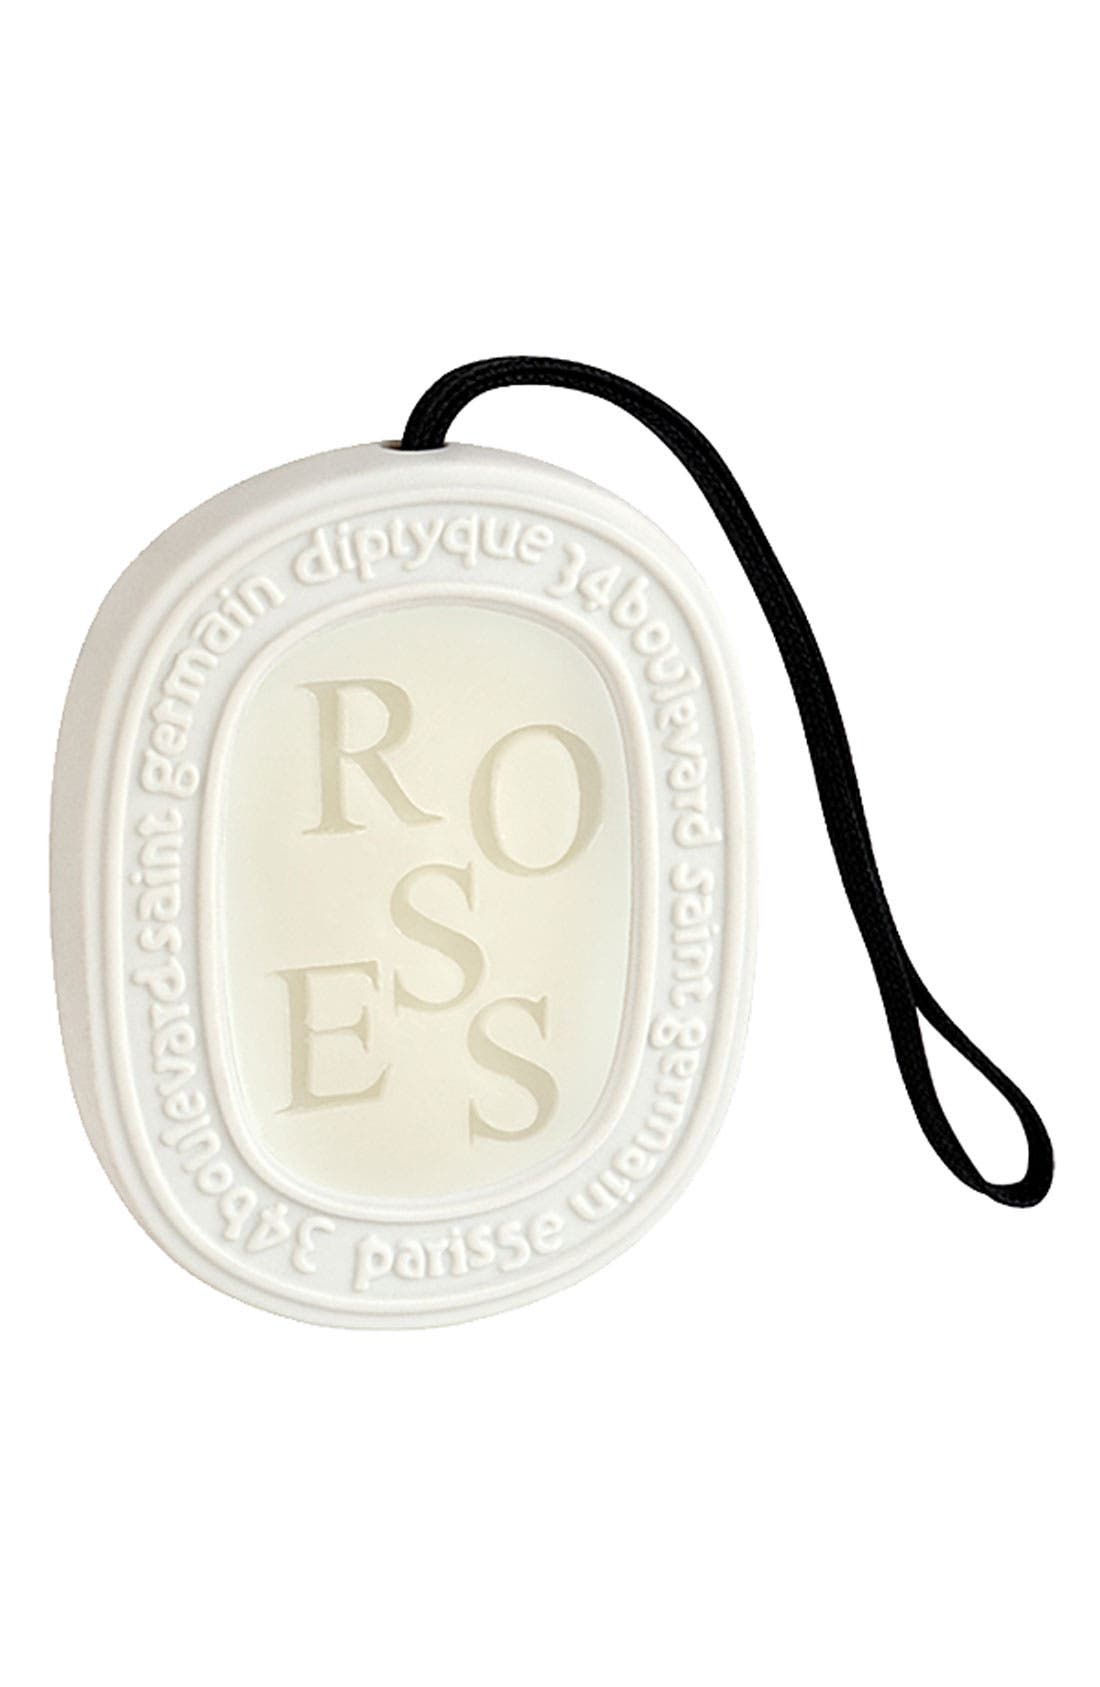 Main Image - diptyque 'Roses' Scented Oval